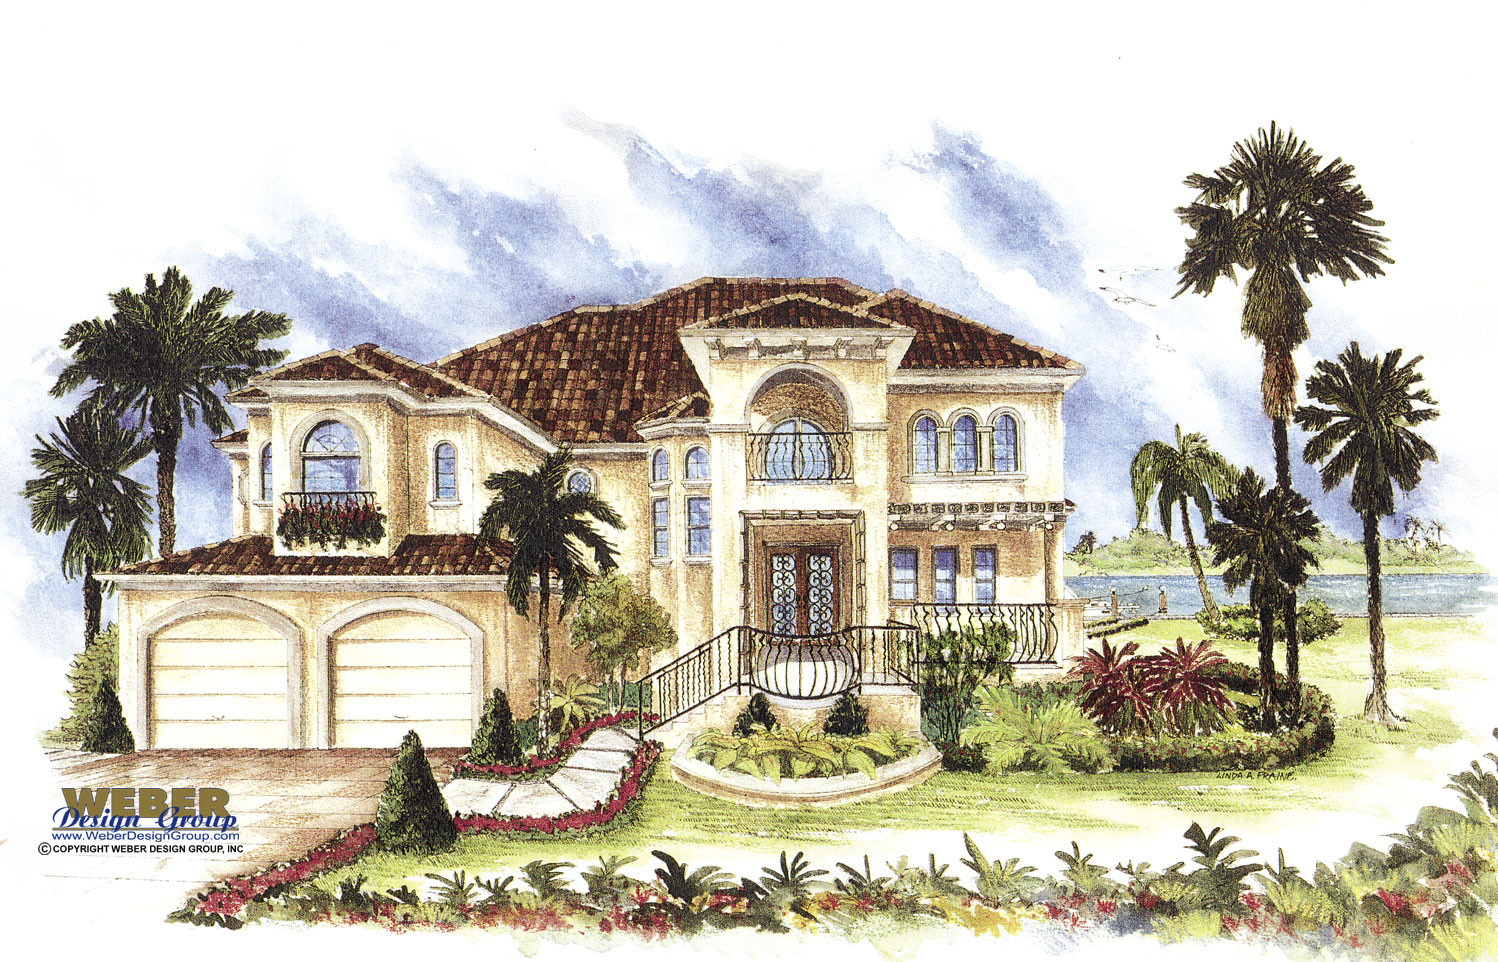 House design mediterranean style - Catania I House Plan